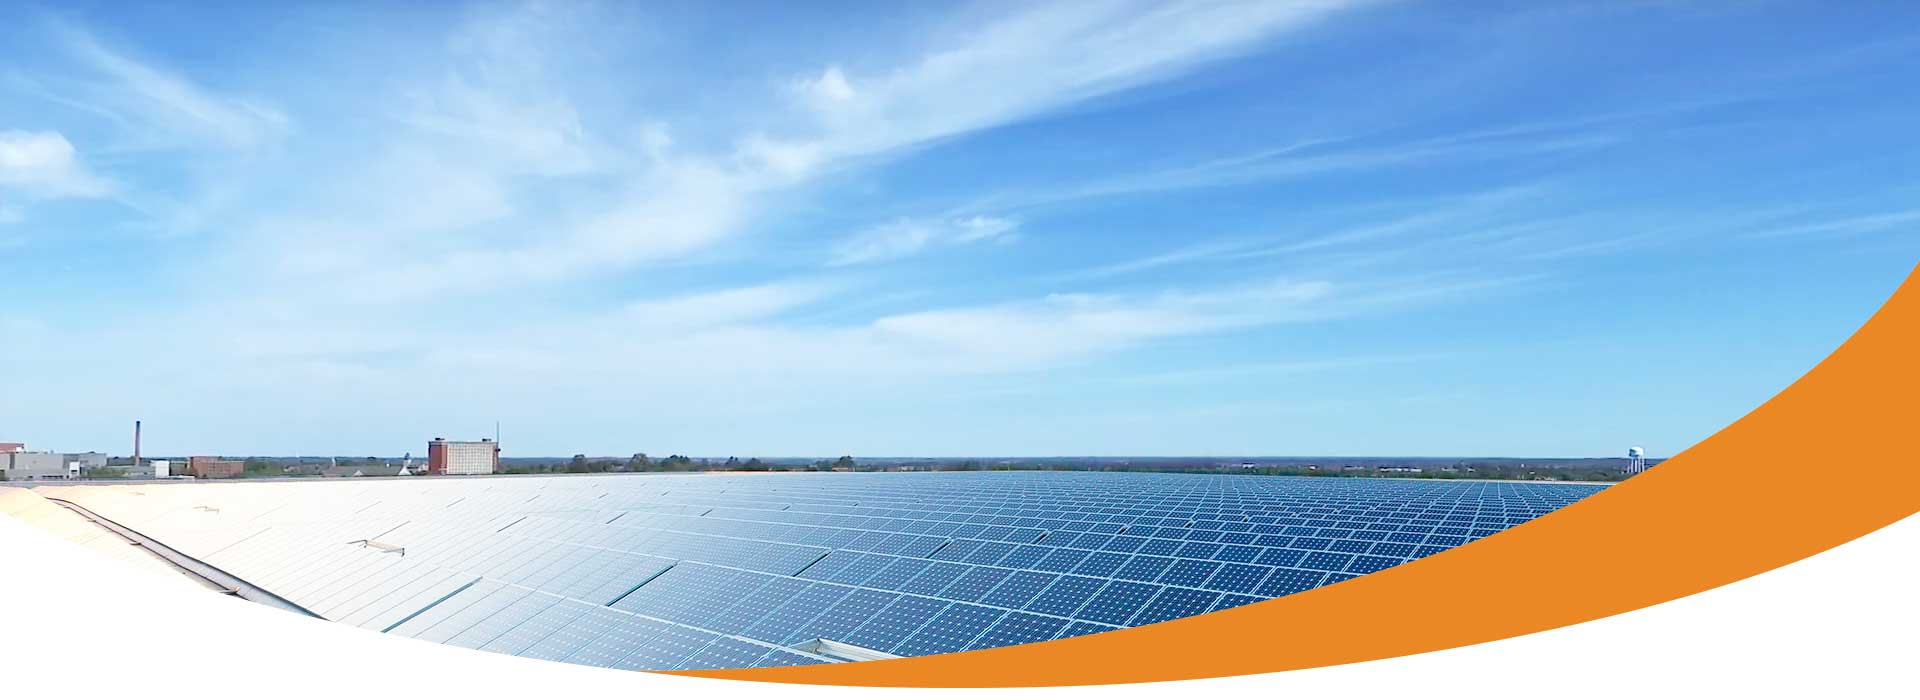 Distributed photovoltaic power generation   Building a new energy ecosystem